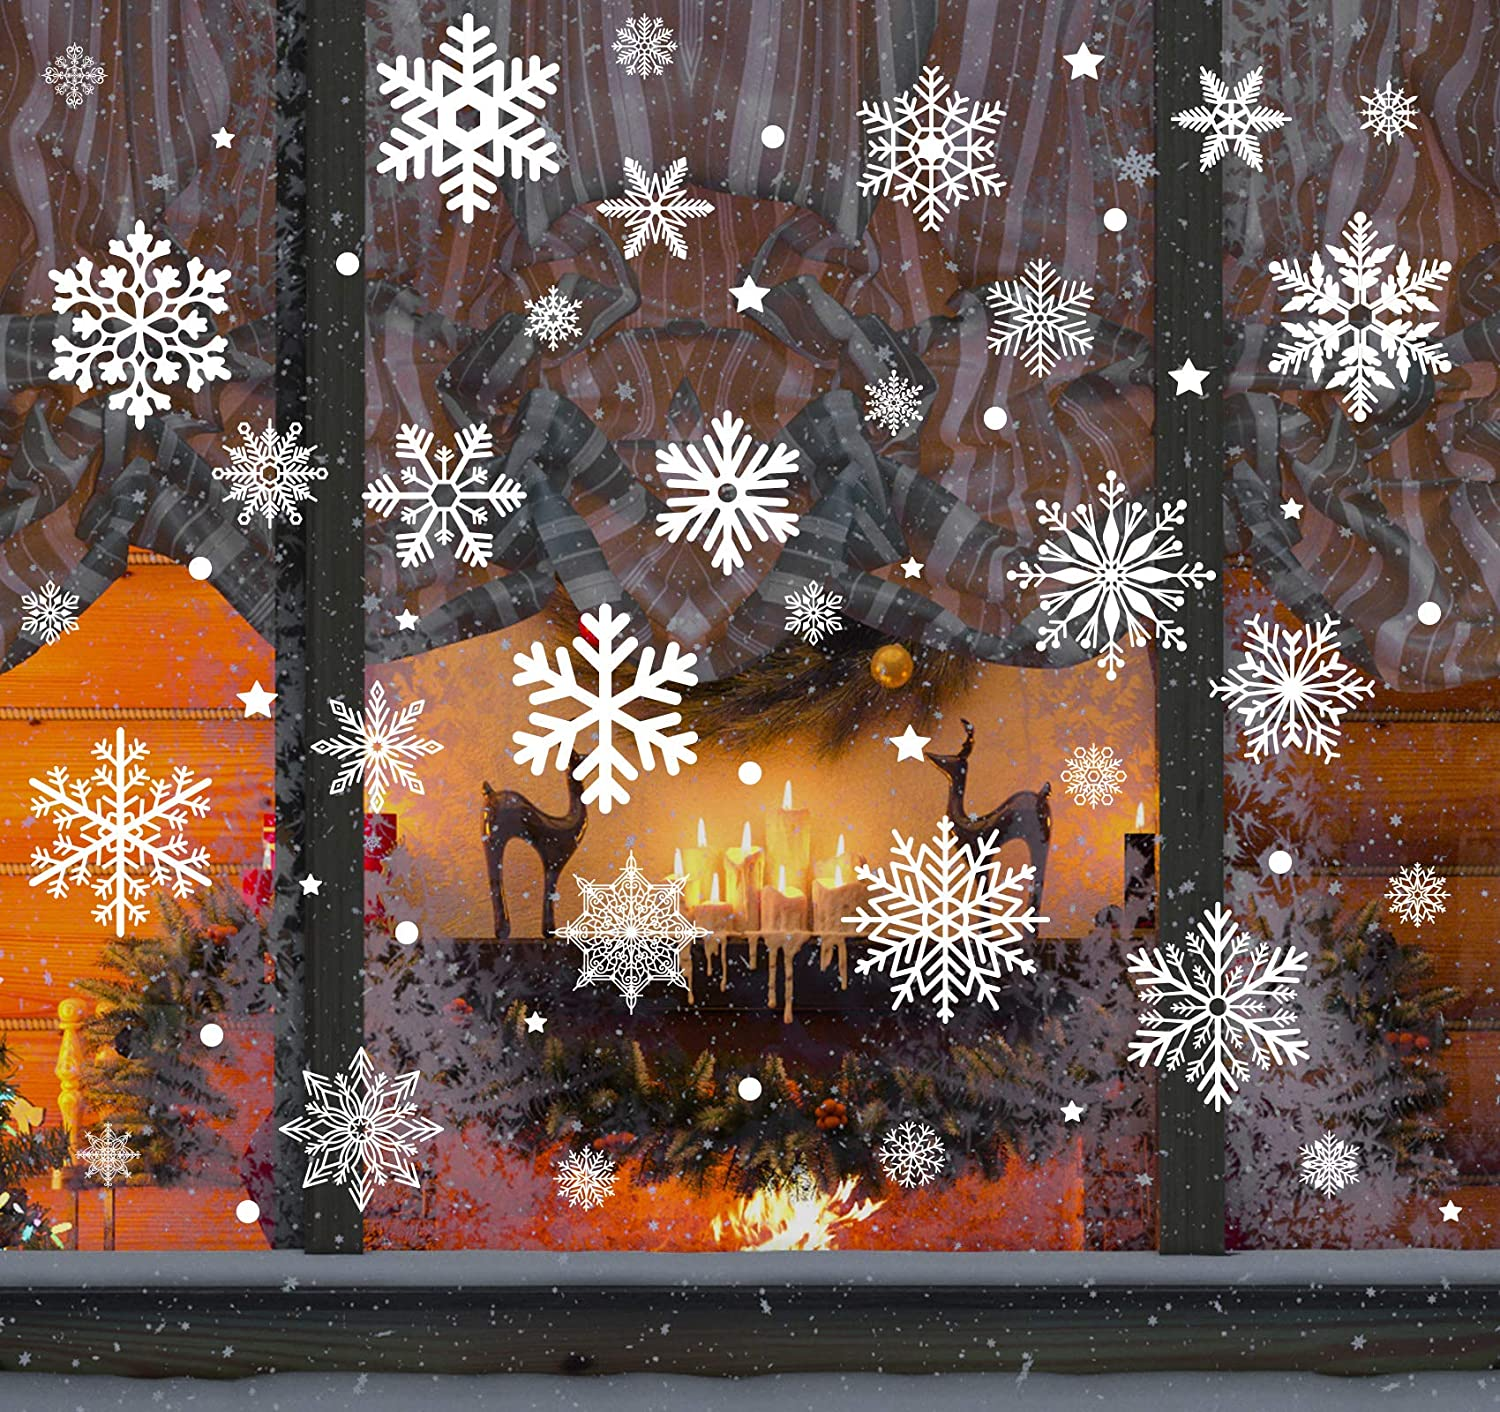 140Pcs Christmas Snowflakes Window Stickers White Clings Static Snow Flakes Reusable Decals Decorations for Xmas Party Window Mirror Fireplace (8 Sheets)